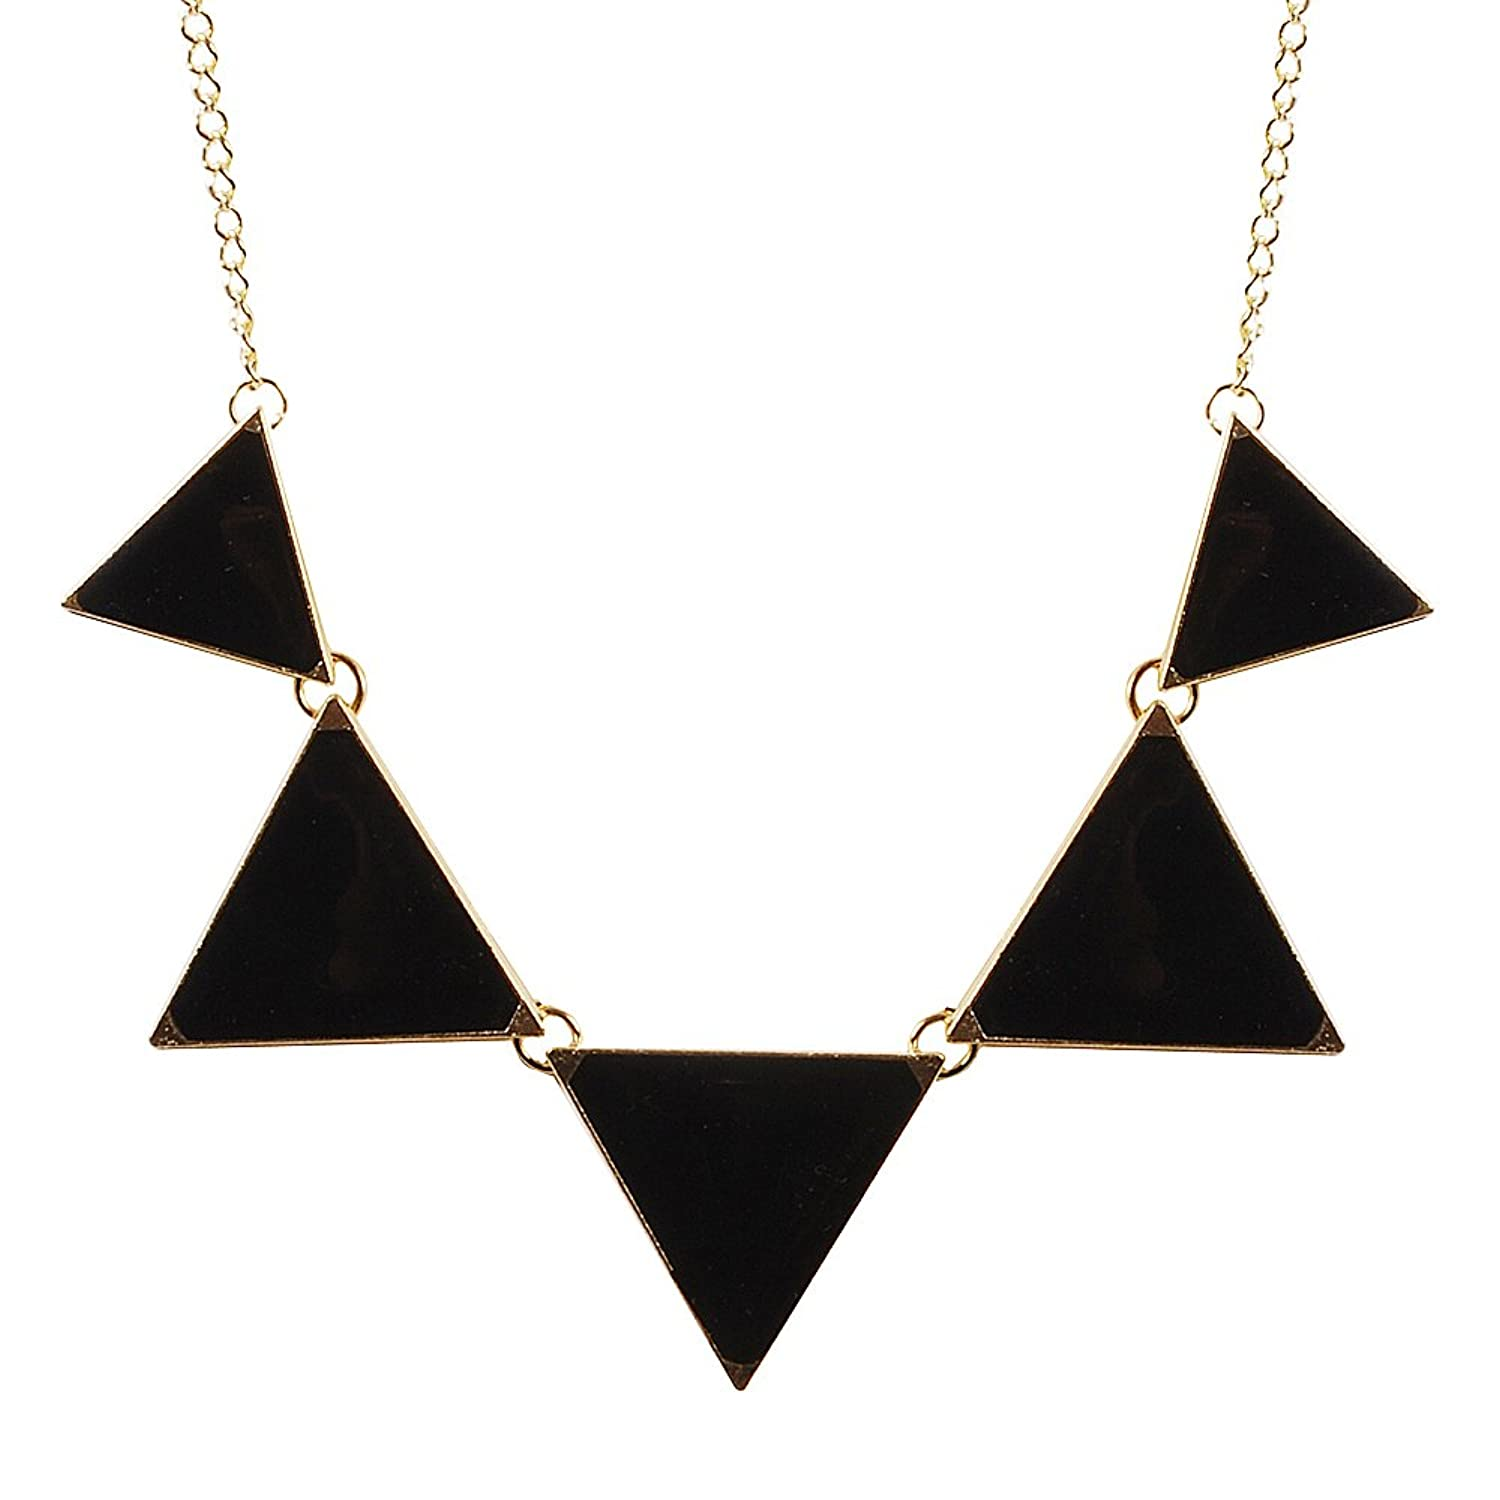 Black Necklace Triangle Necklace Bib Necklace Statement Necklace (Fn0568 - Black)